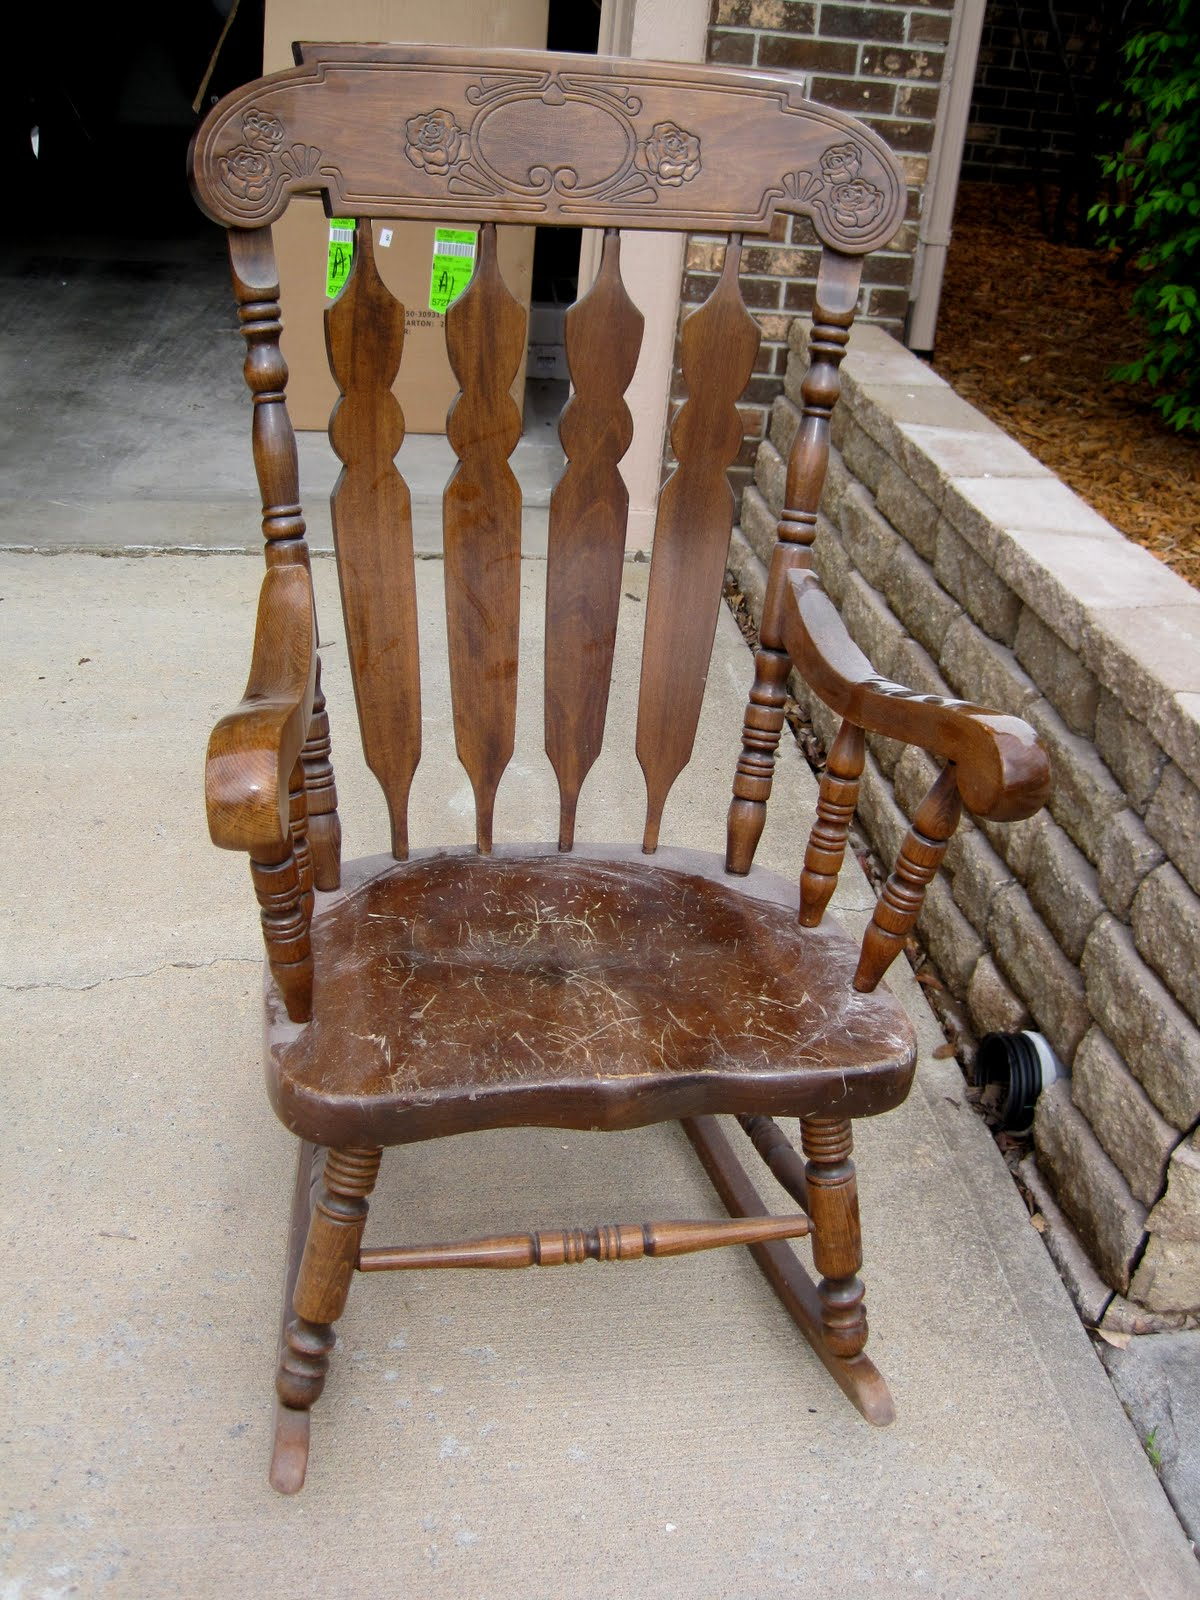 Refinishing A Rocking Chair | Between 3 SistersBetween 3 Sisters